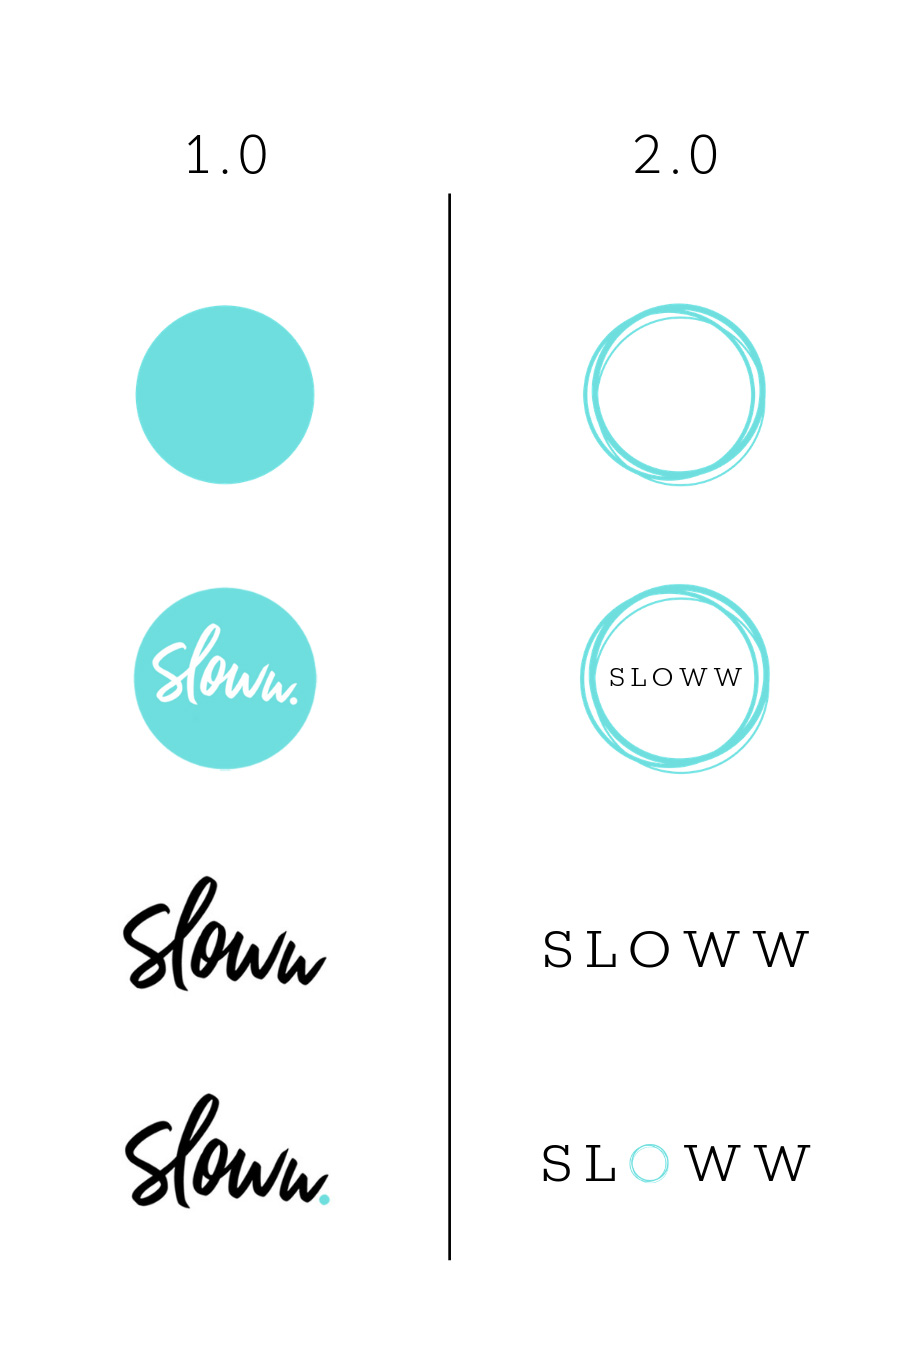 Sloww 2.0 Logo Evolution